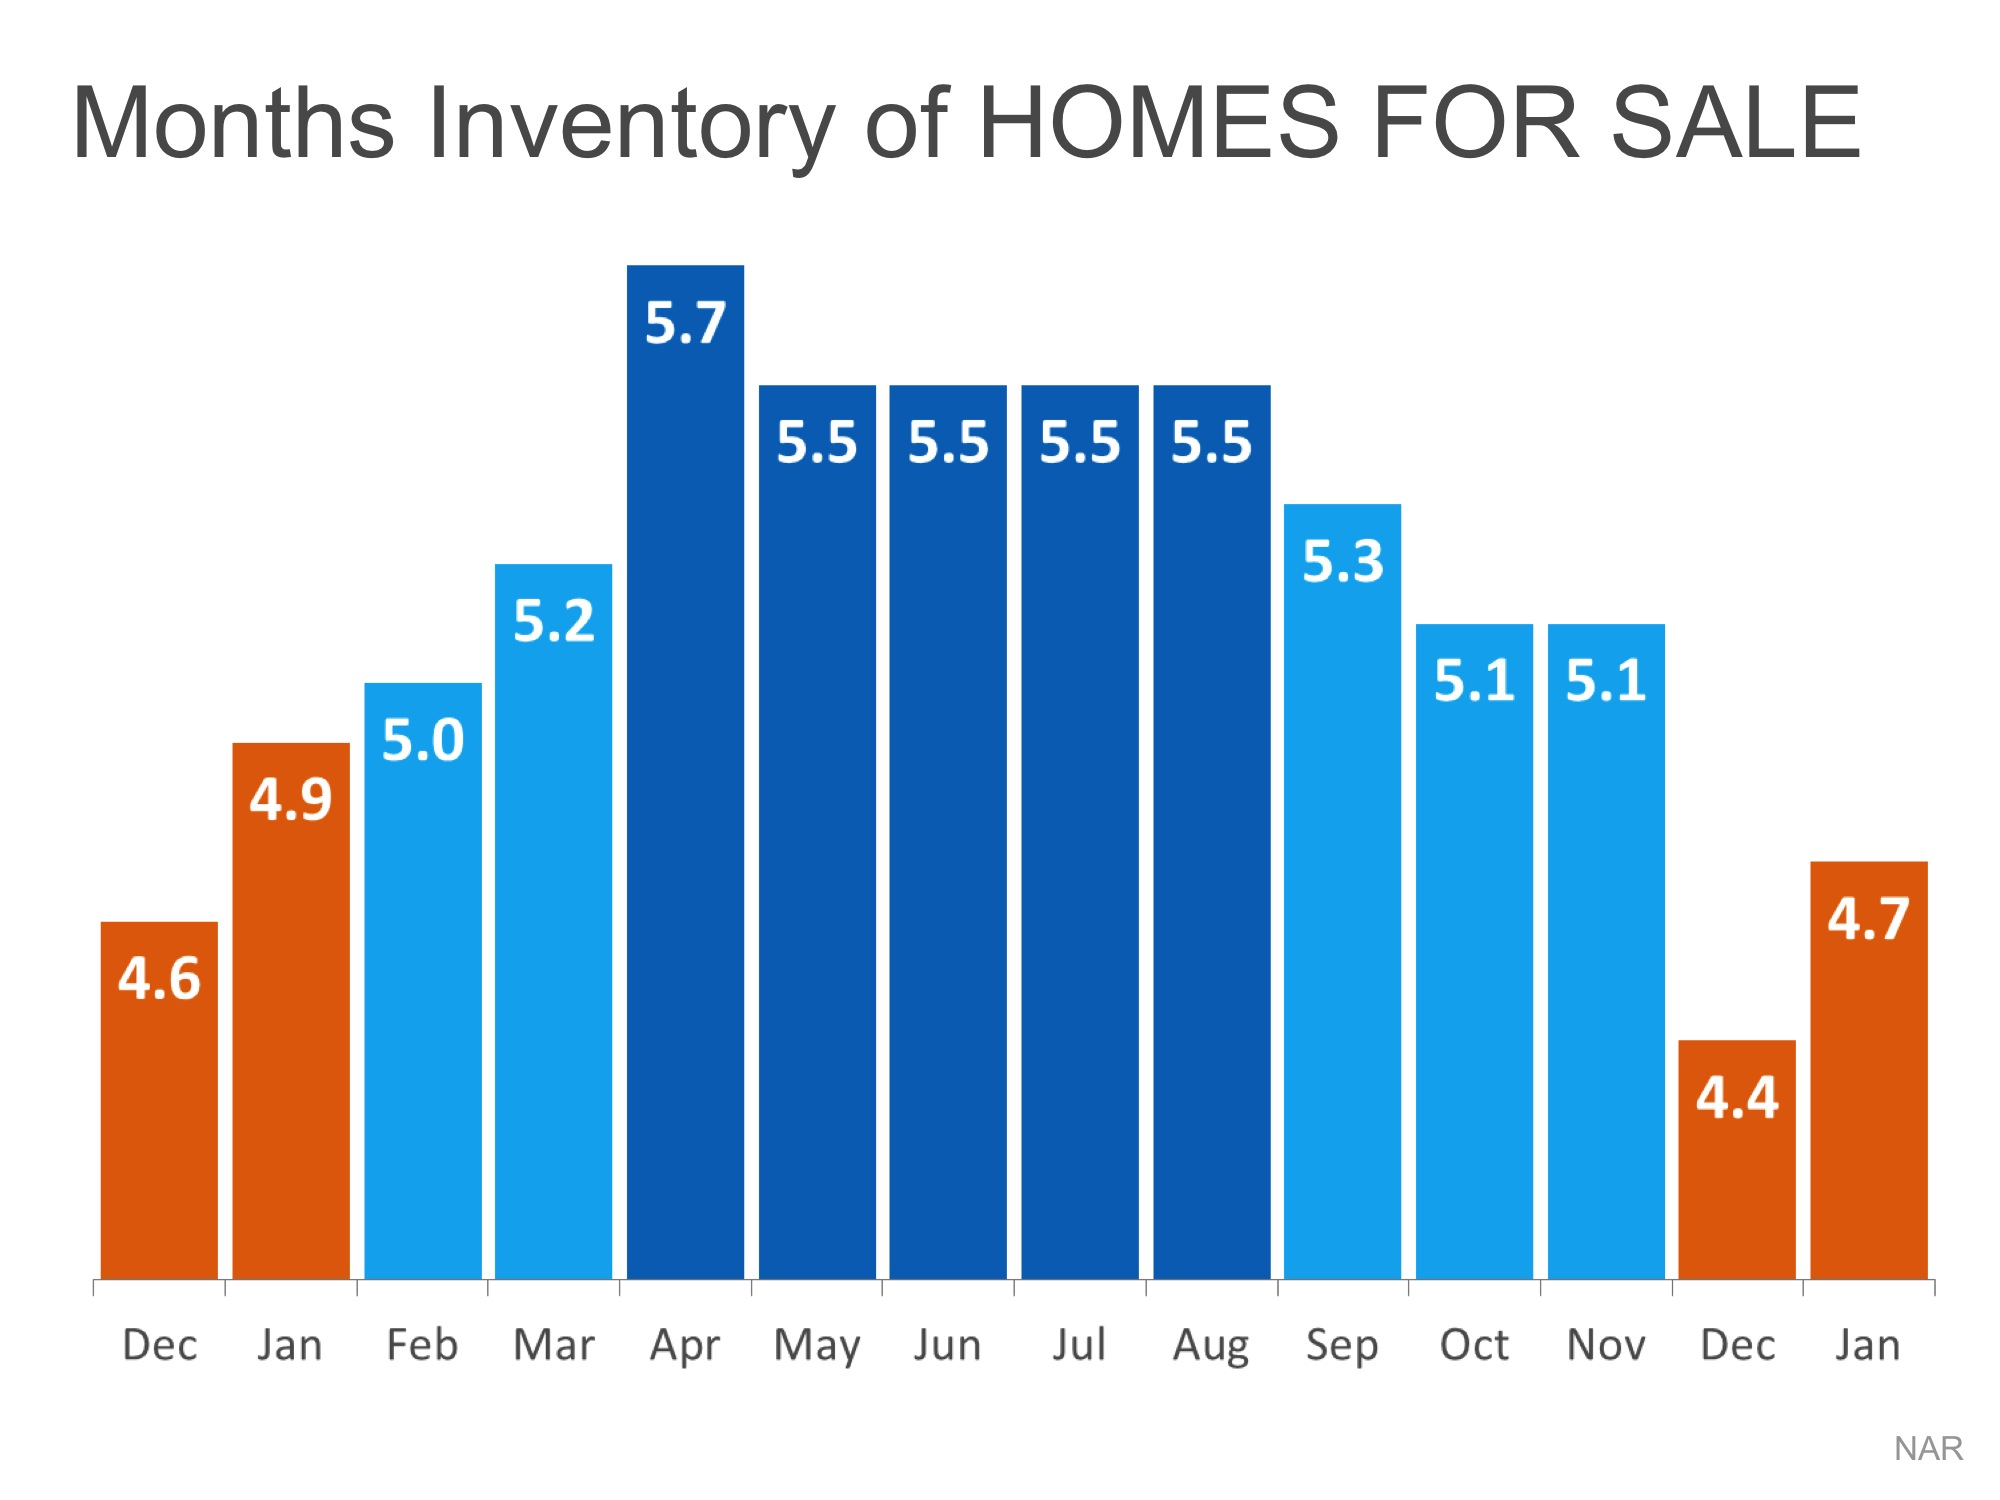 Months Inventory Homes For Sale | Keeping Current Matters